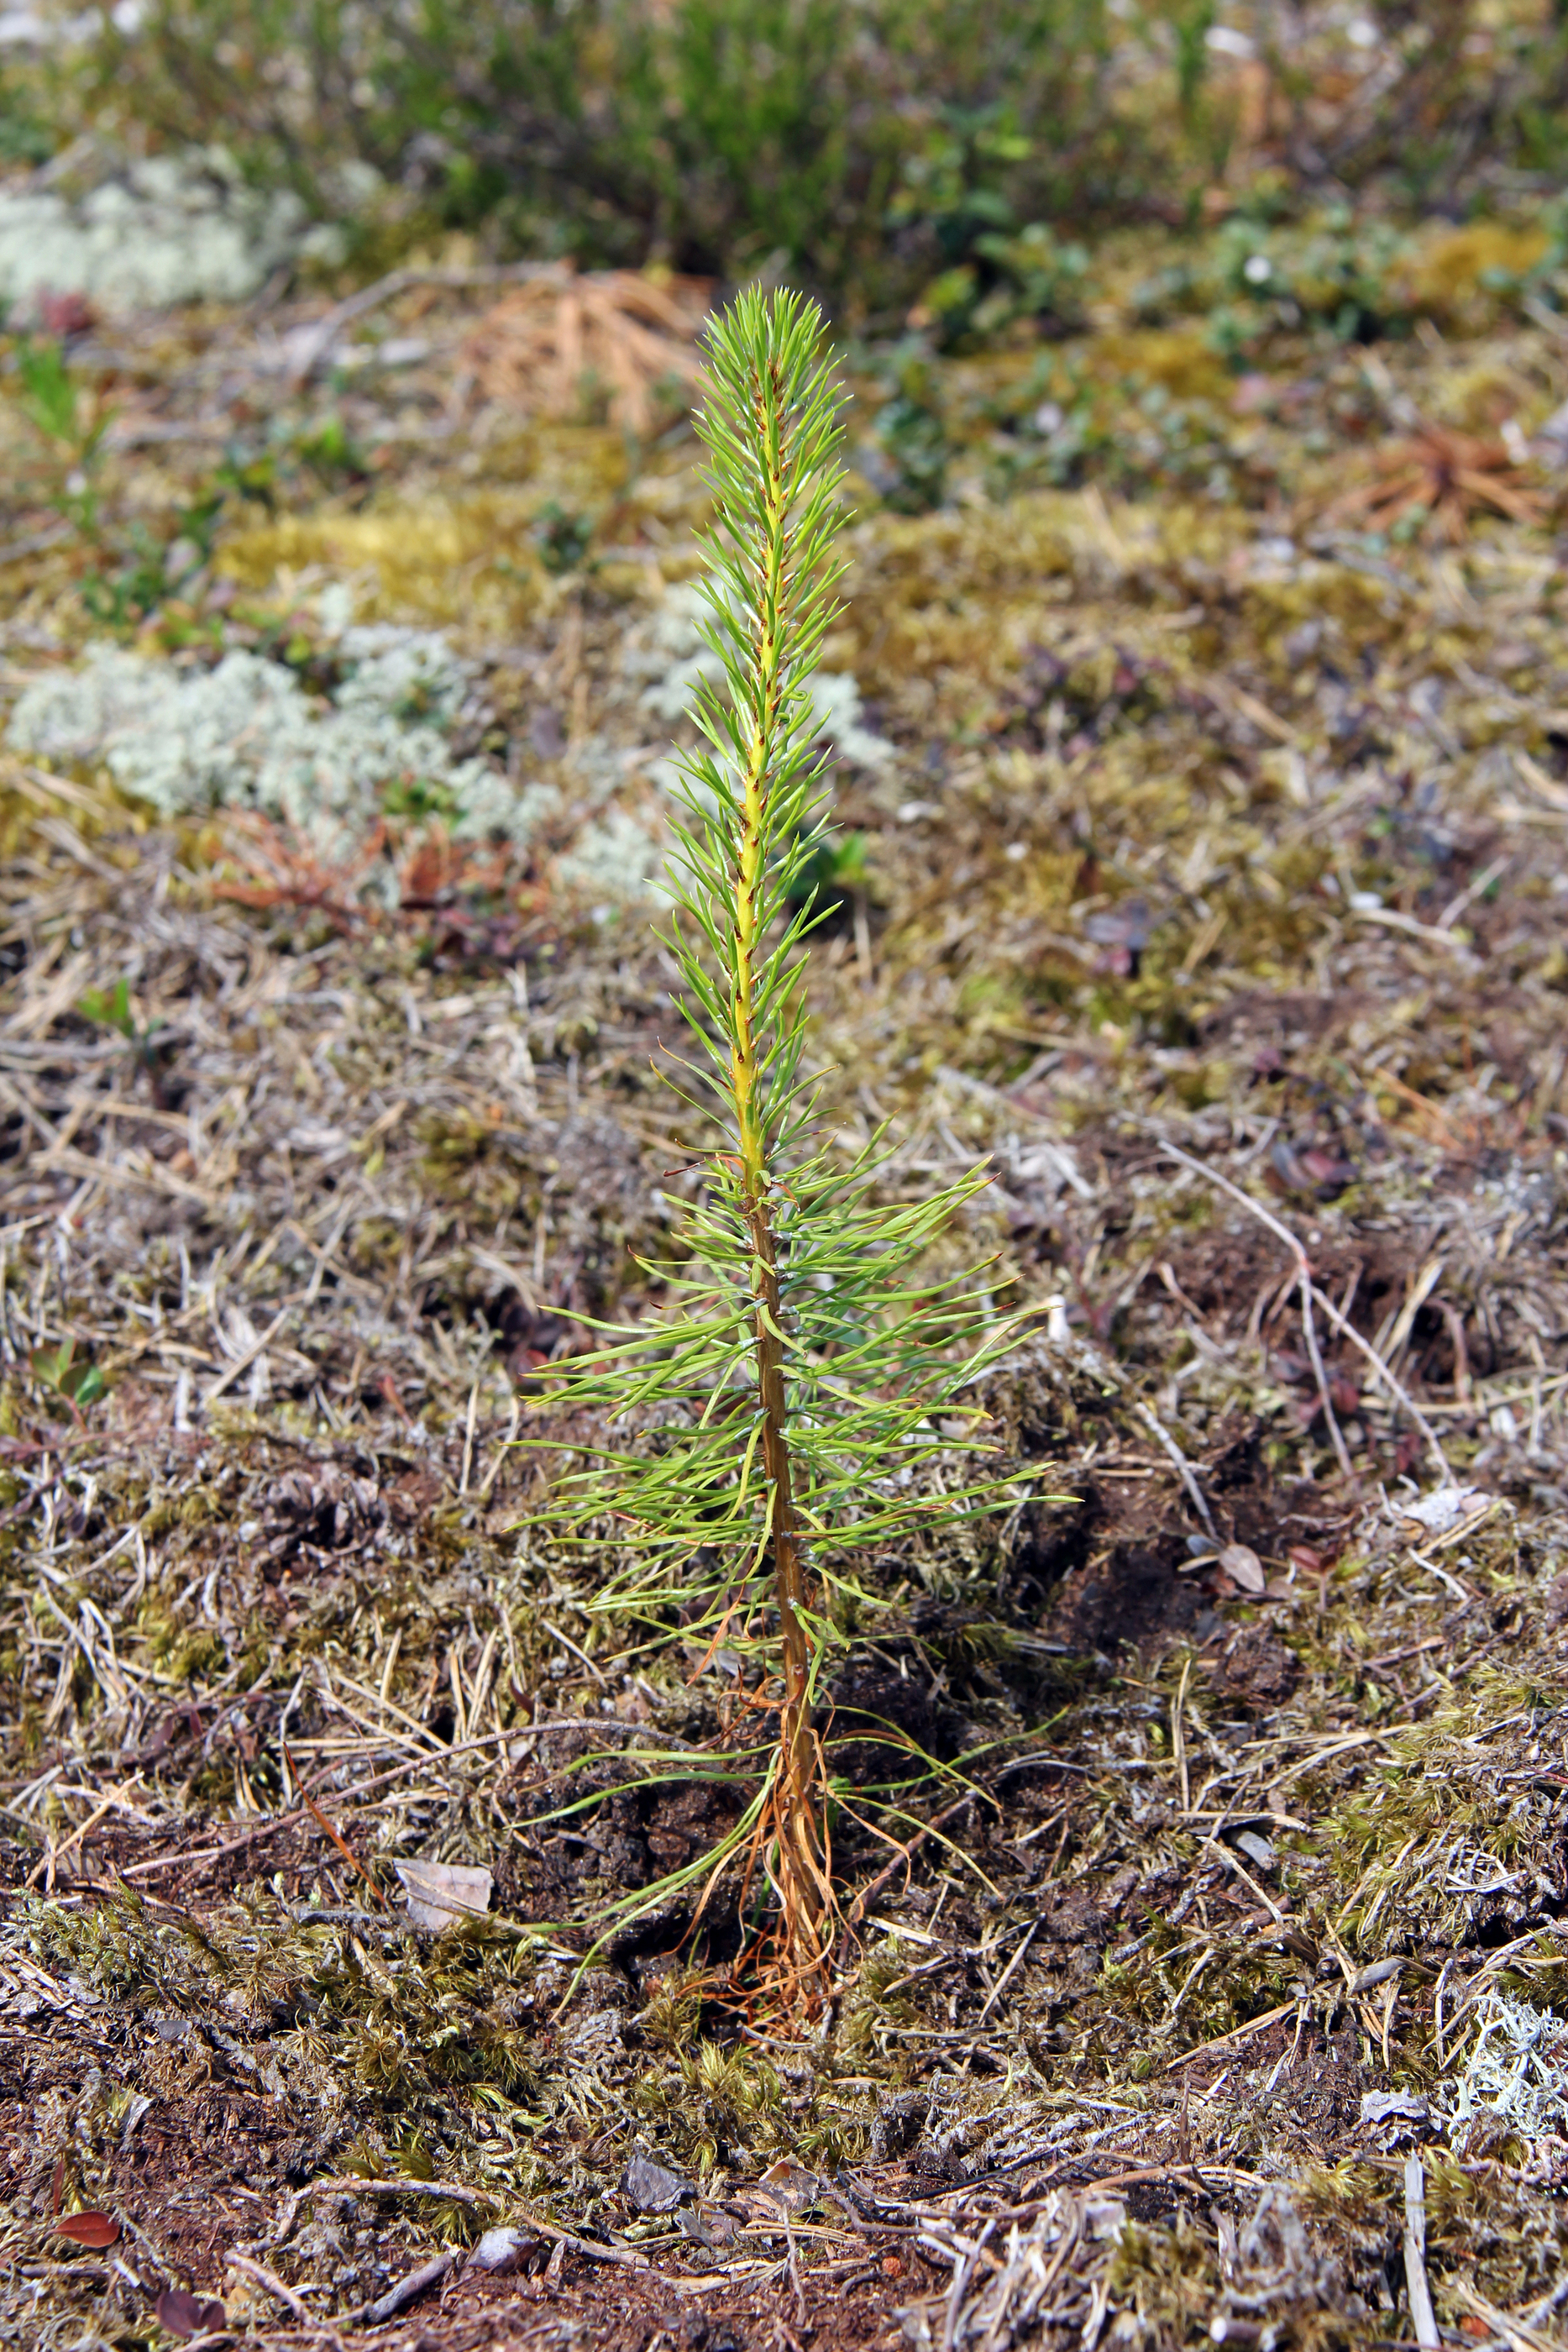 Newly Planted Pine Tree Seedling.jpg